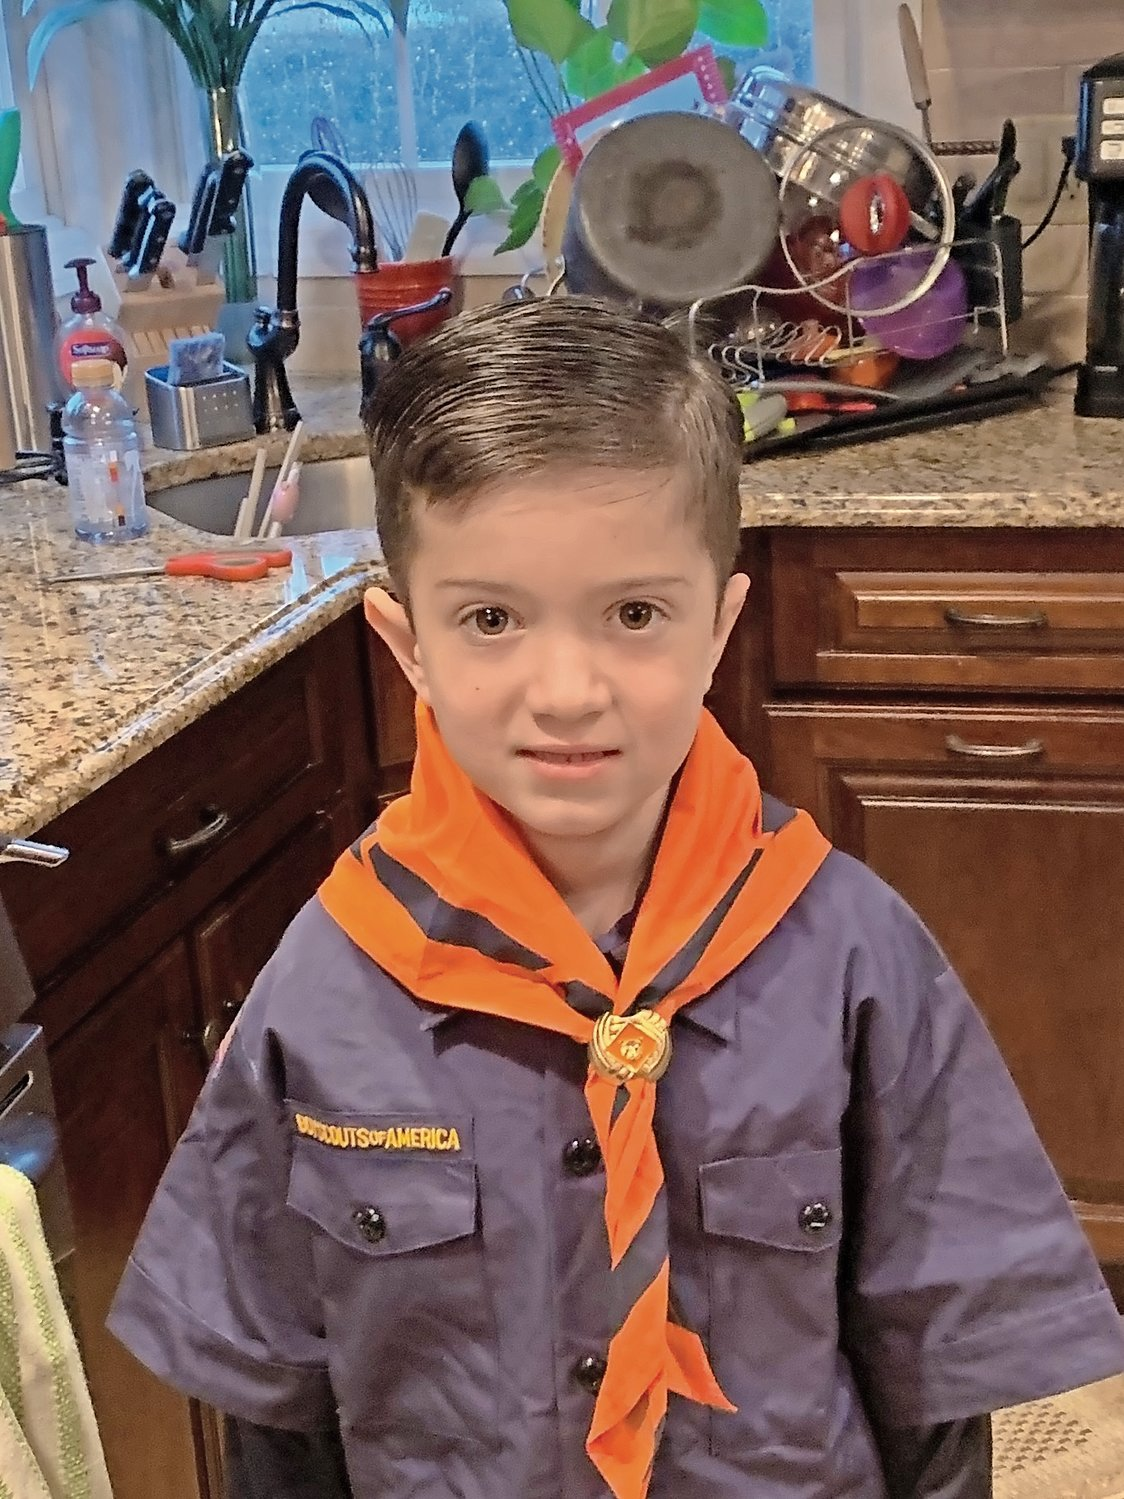 Daniel Accomando, 7, of Rockville Centre, saved his 4-year-old friend.